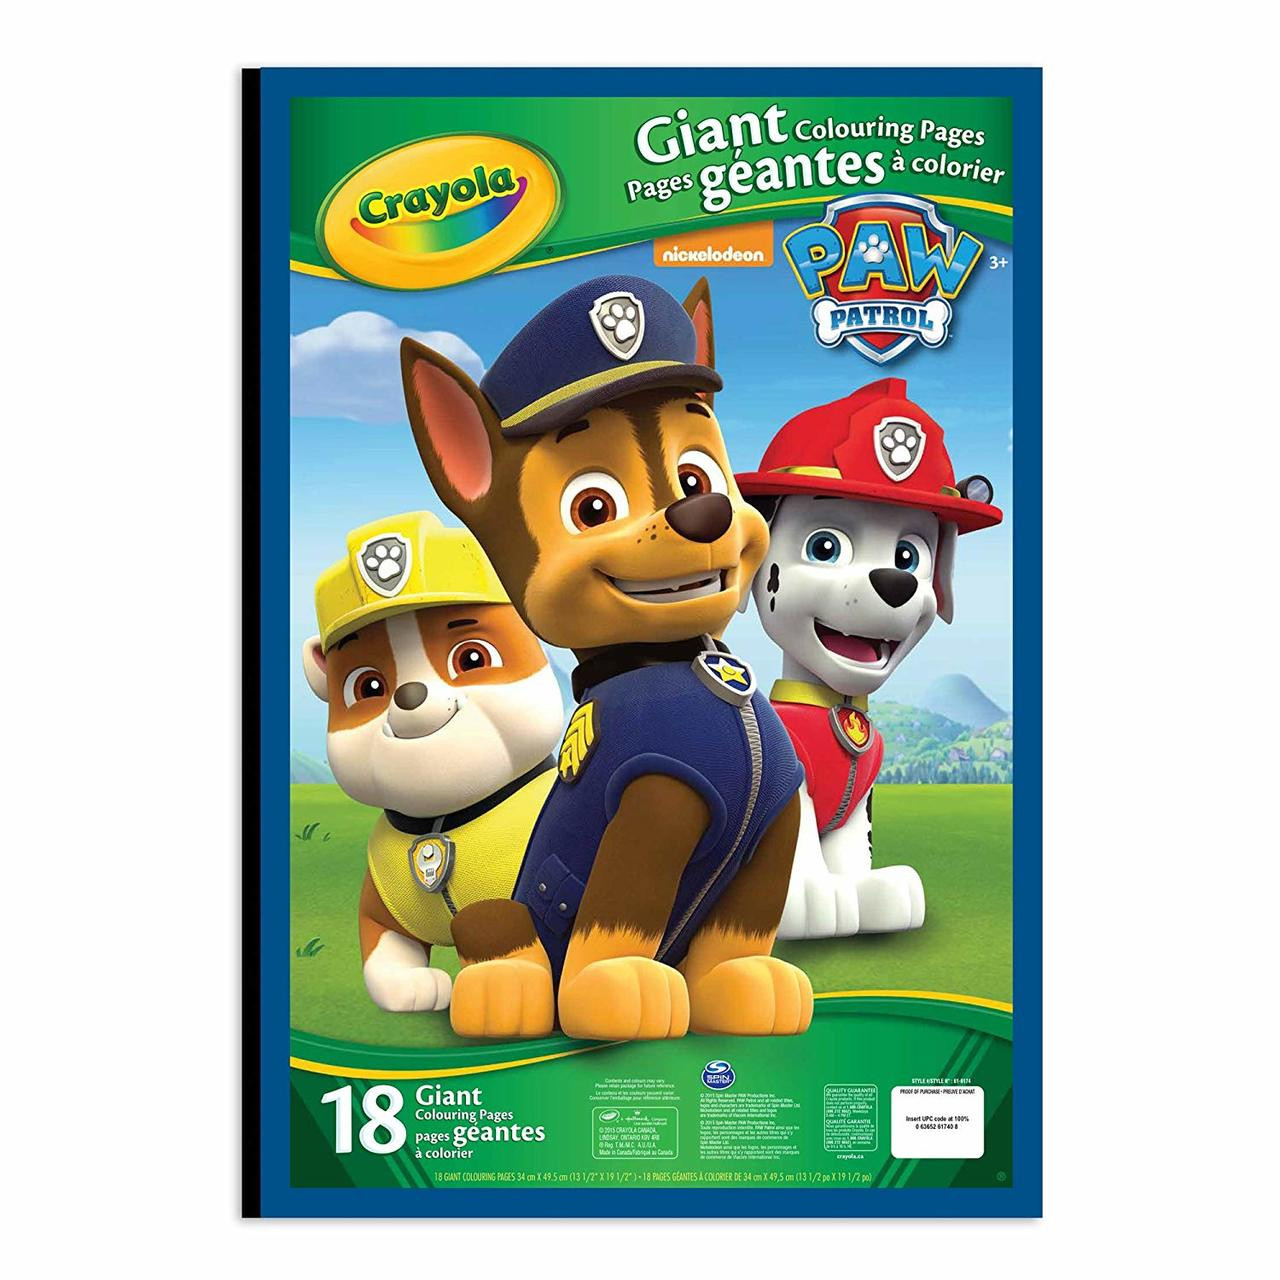 CRAYOLA 04 7020 GIANT COLORING PAGES - PAW PATROL